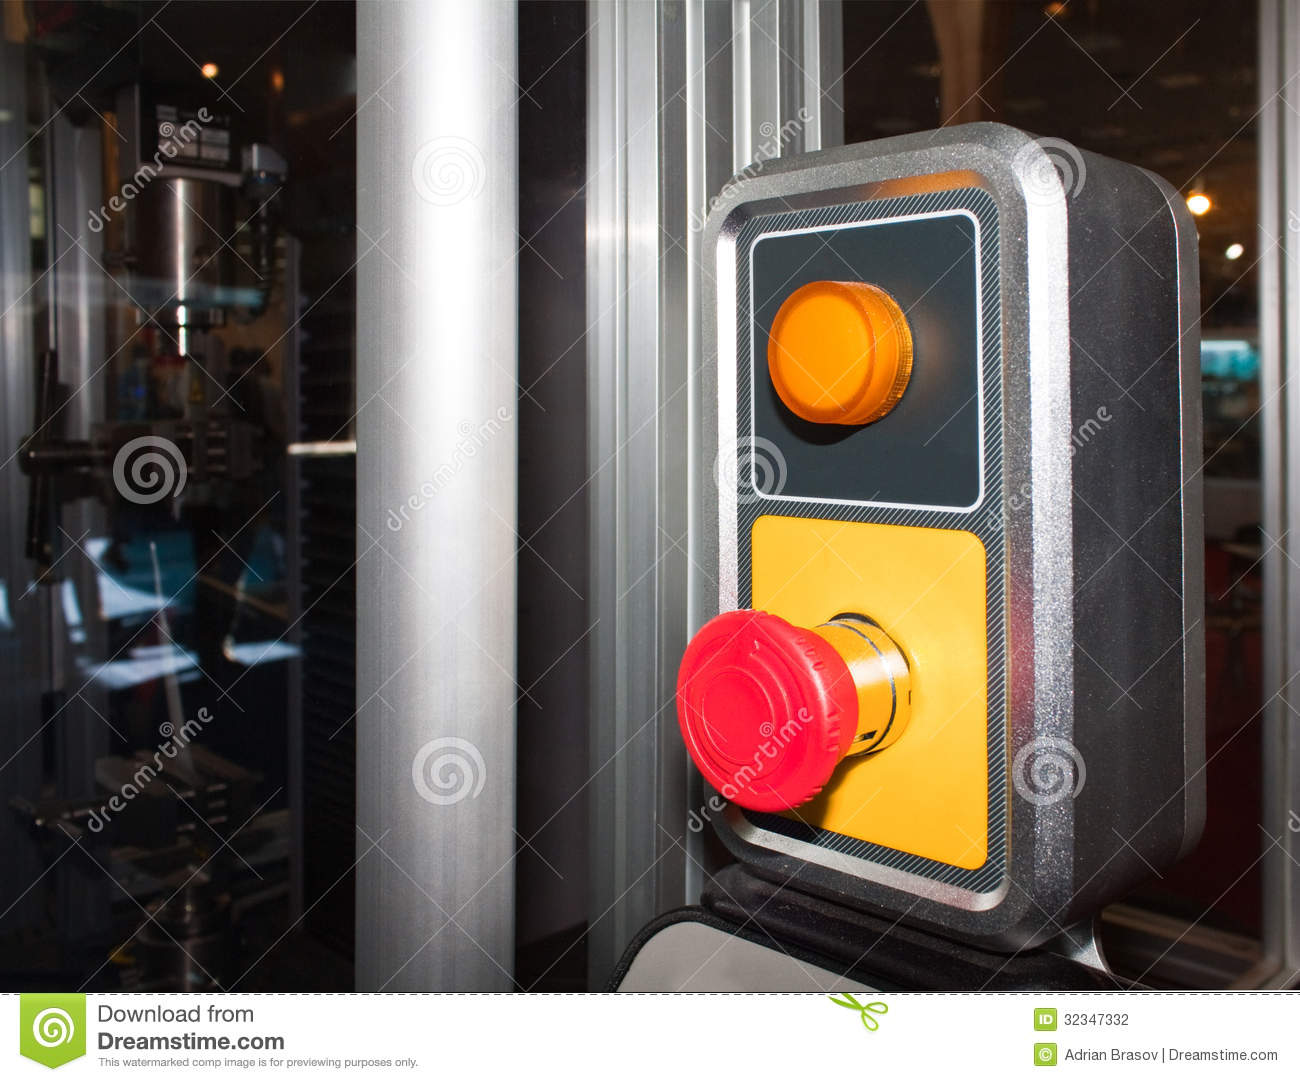 Emergency stop icon clipart emergency off - Emergency Stop Button Stock Photography